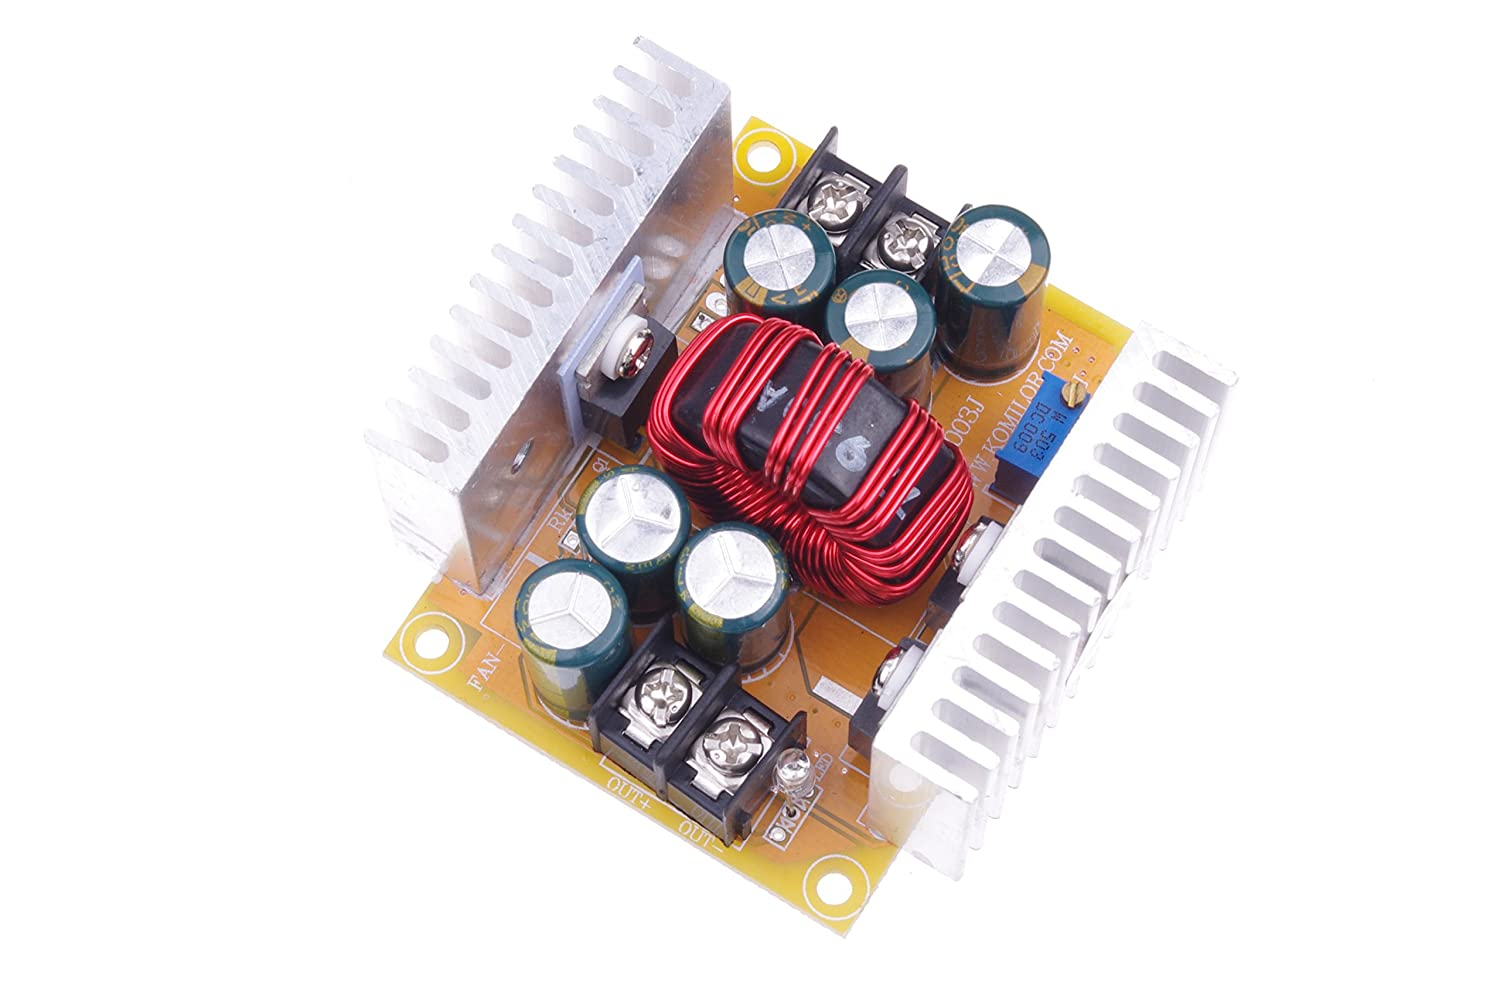 Smakn Dc High Power 20a Buck Adjustable Step Down Supercap Charger Plus A 5v At 4a Converter From 55v To 30v 10 40v 08 13v 24v 12v 250w Home Audio Theater